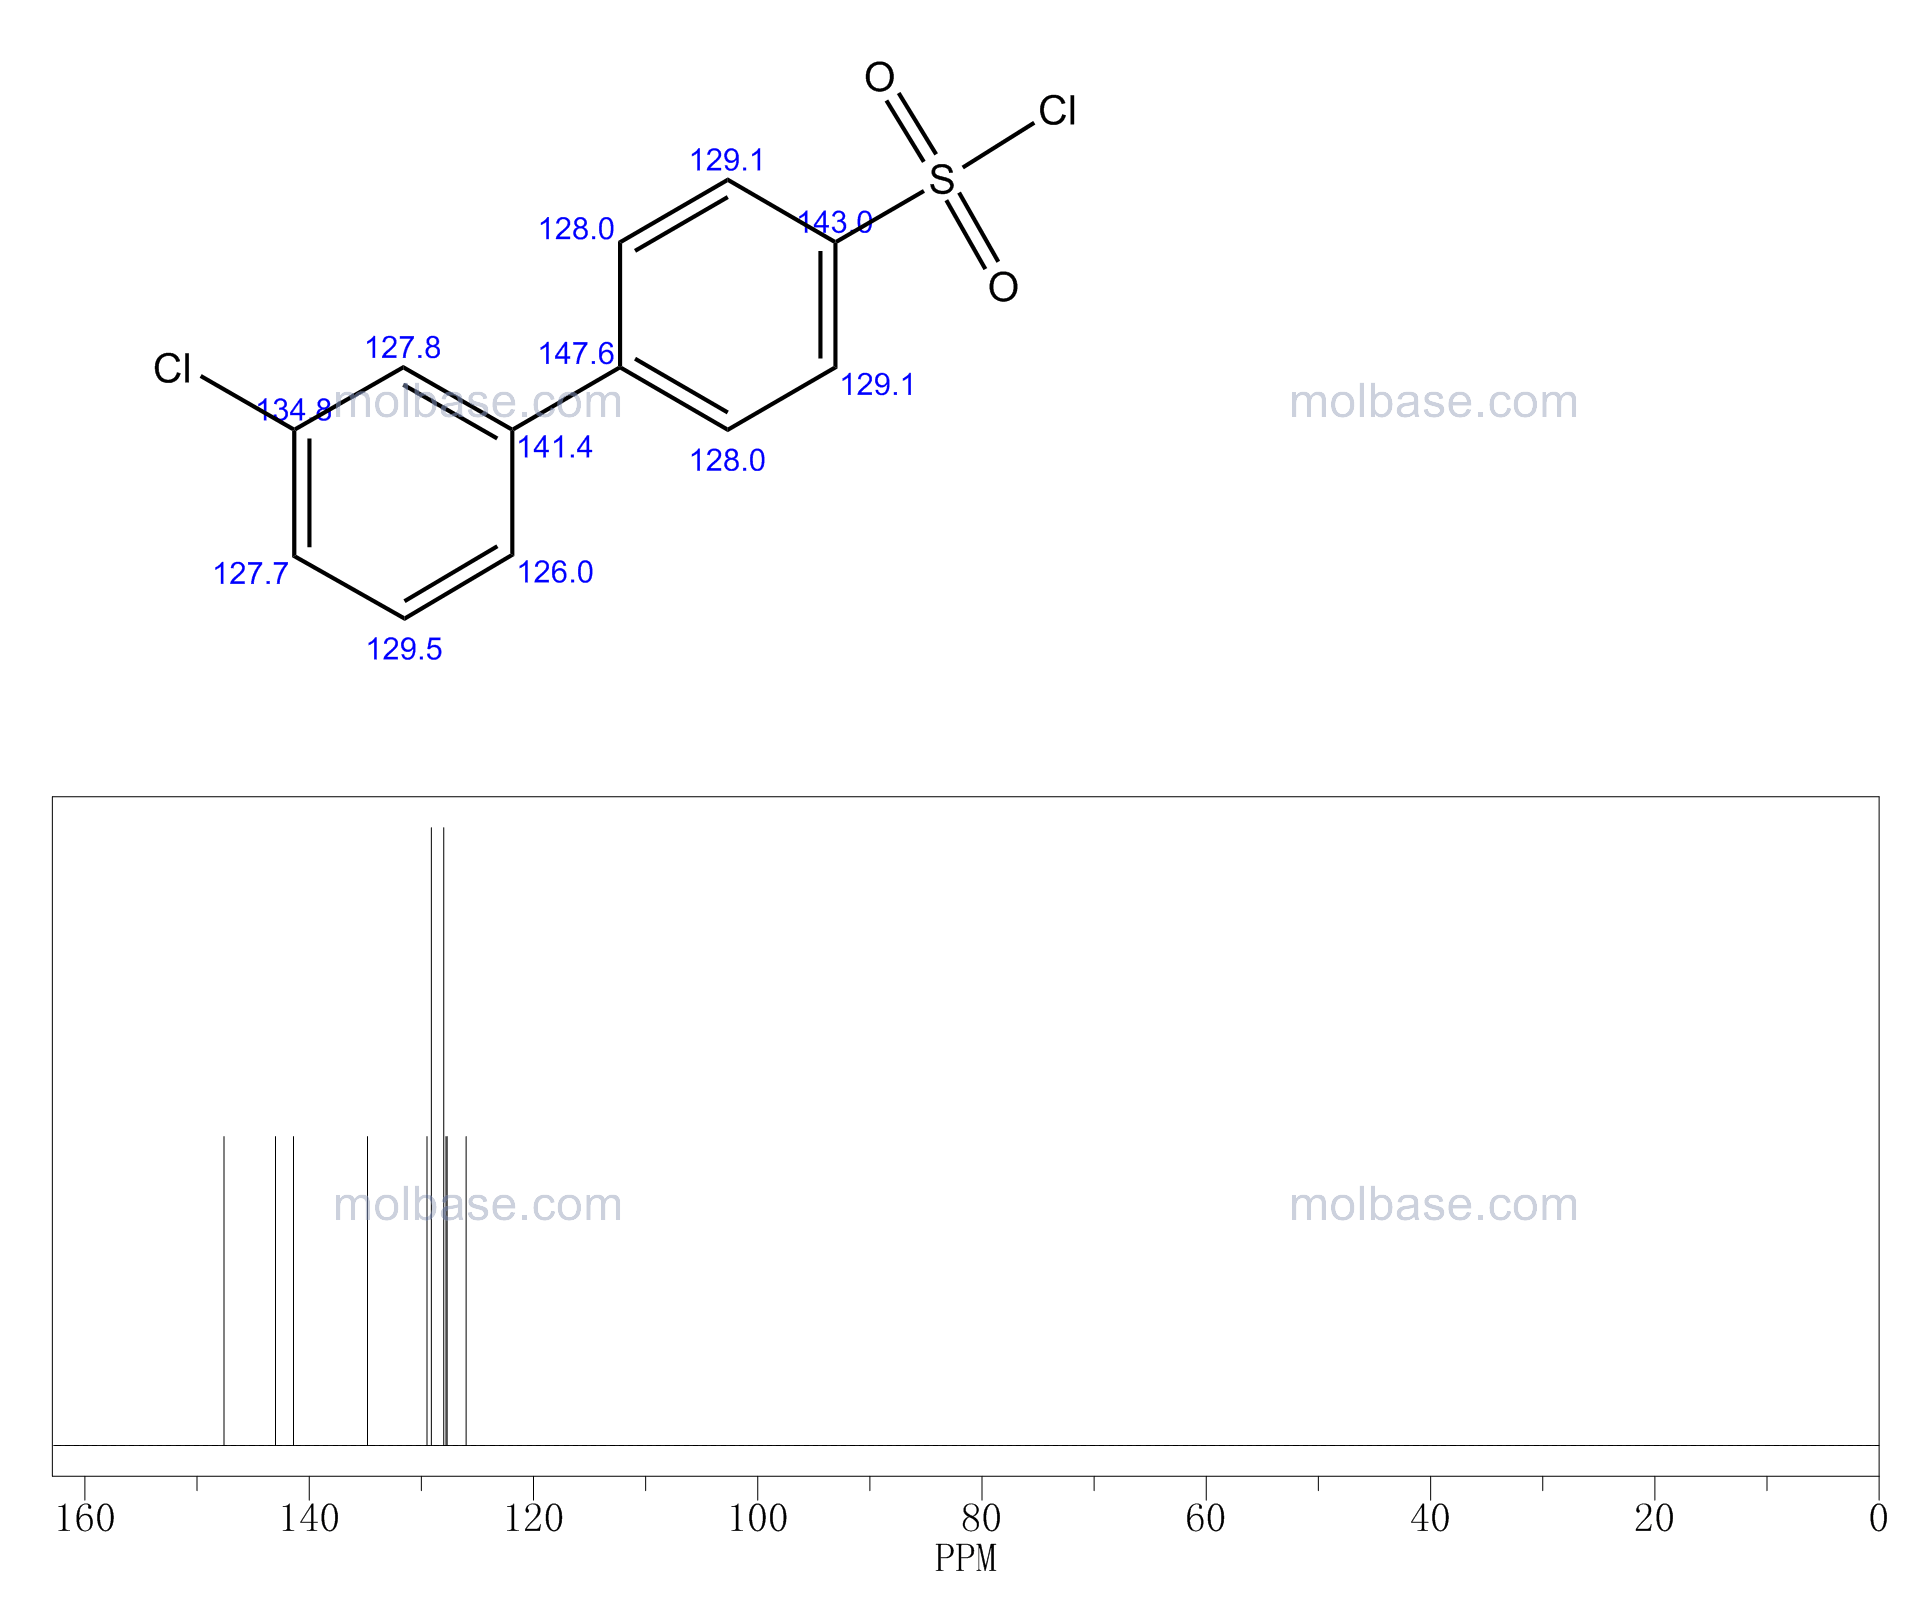 4-(3-chlorophenyl)benzenesulfonyl chloride NMR spectra analysis, Chemical CAS NO. 478647-00-6 NMR spectral analysis, 4-(3-chlorophenyl)benzenesulfonyl chloride C-NMR spectrum